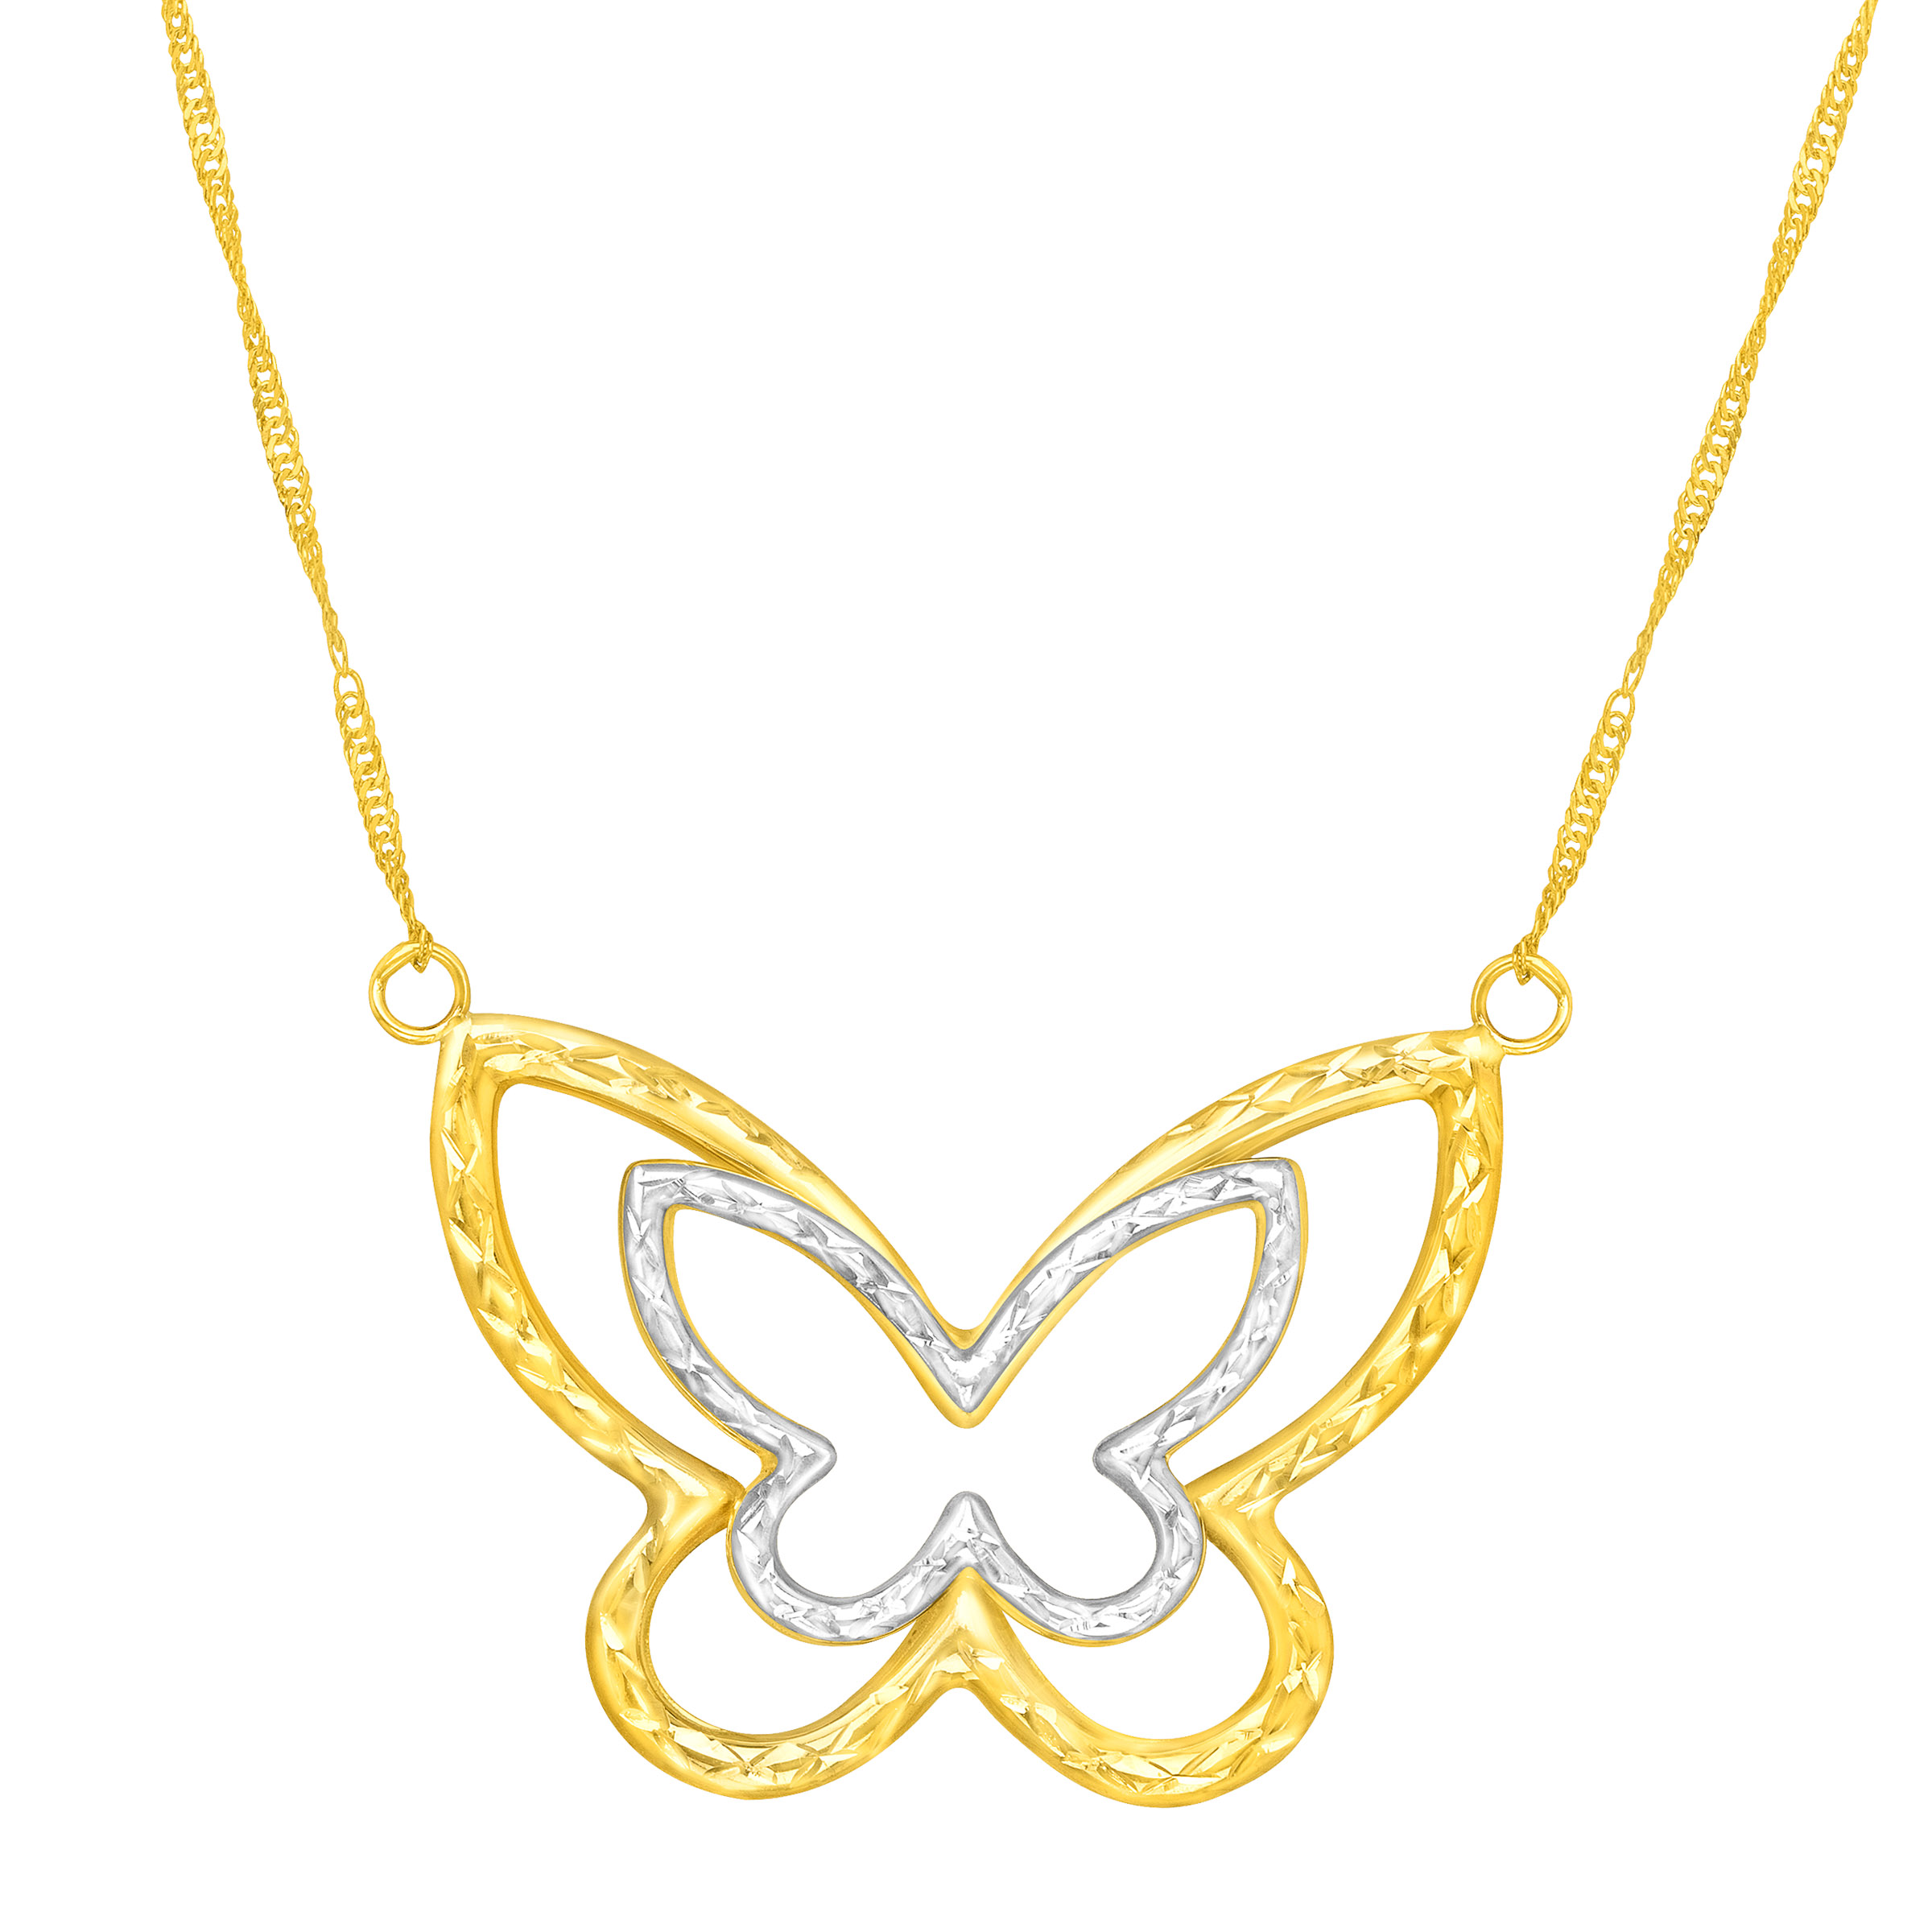 Richline Simply Gold Butterfly Necklace in 14kt Two-Tone Gold